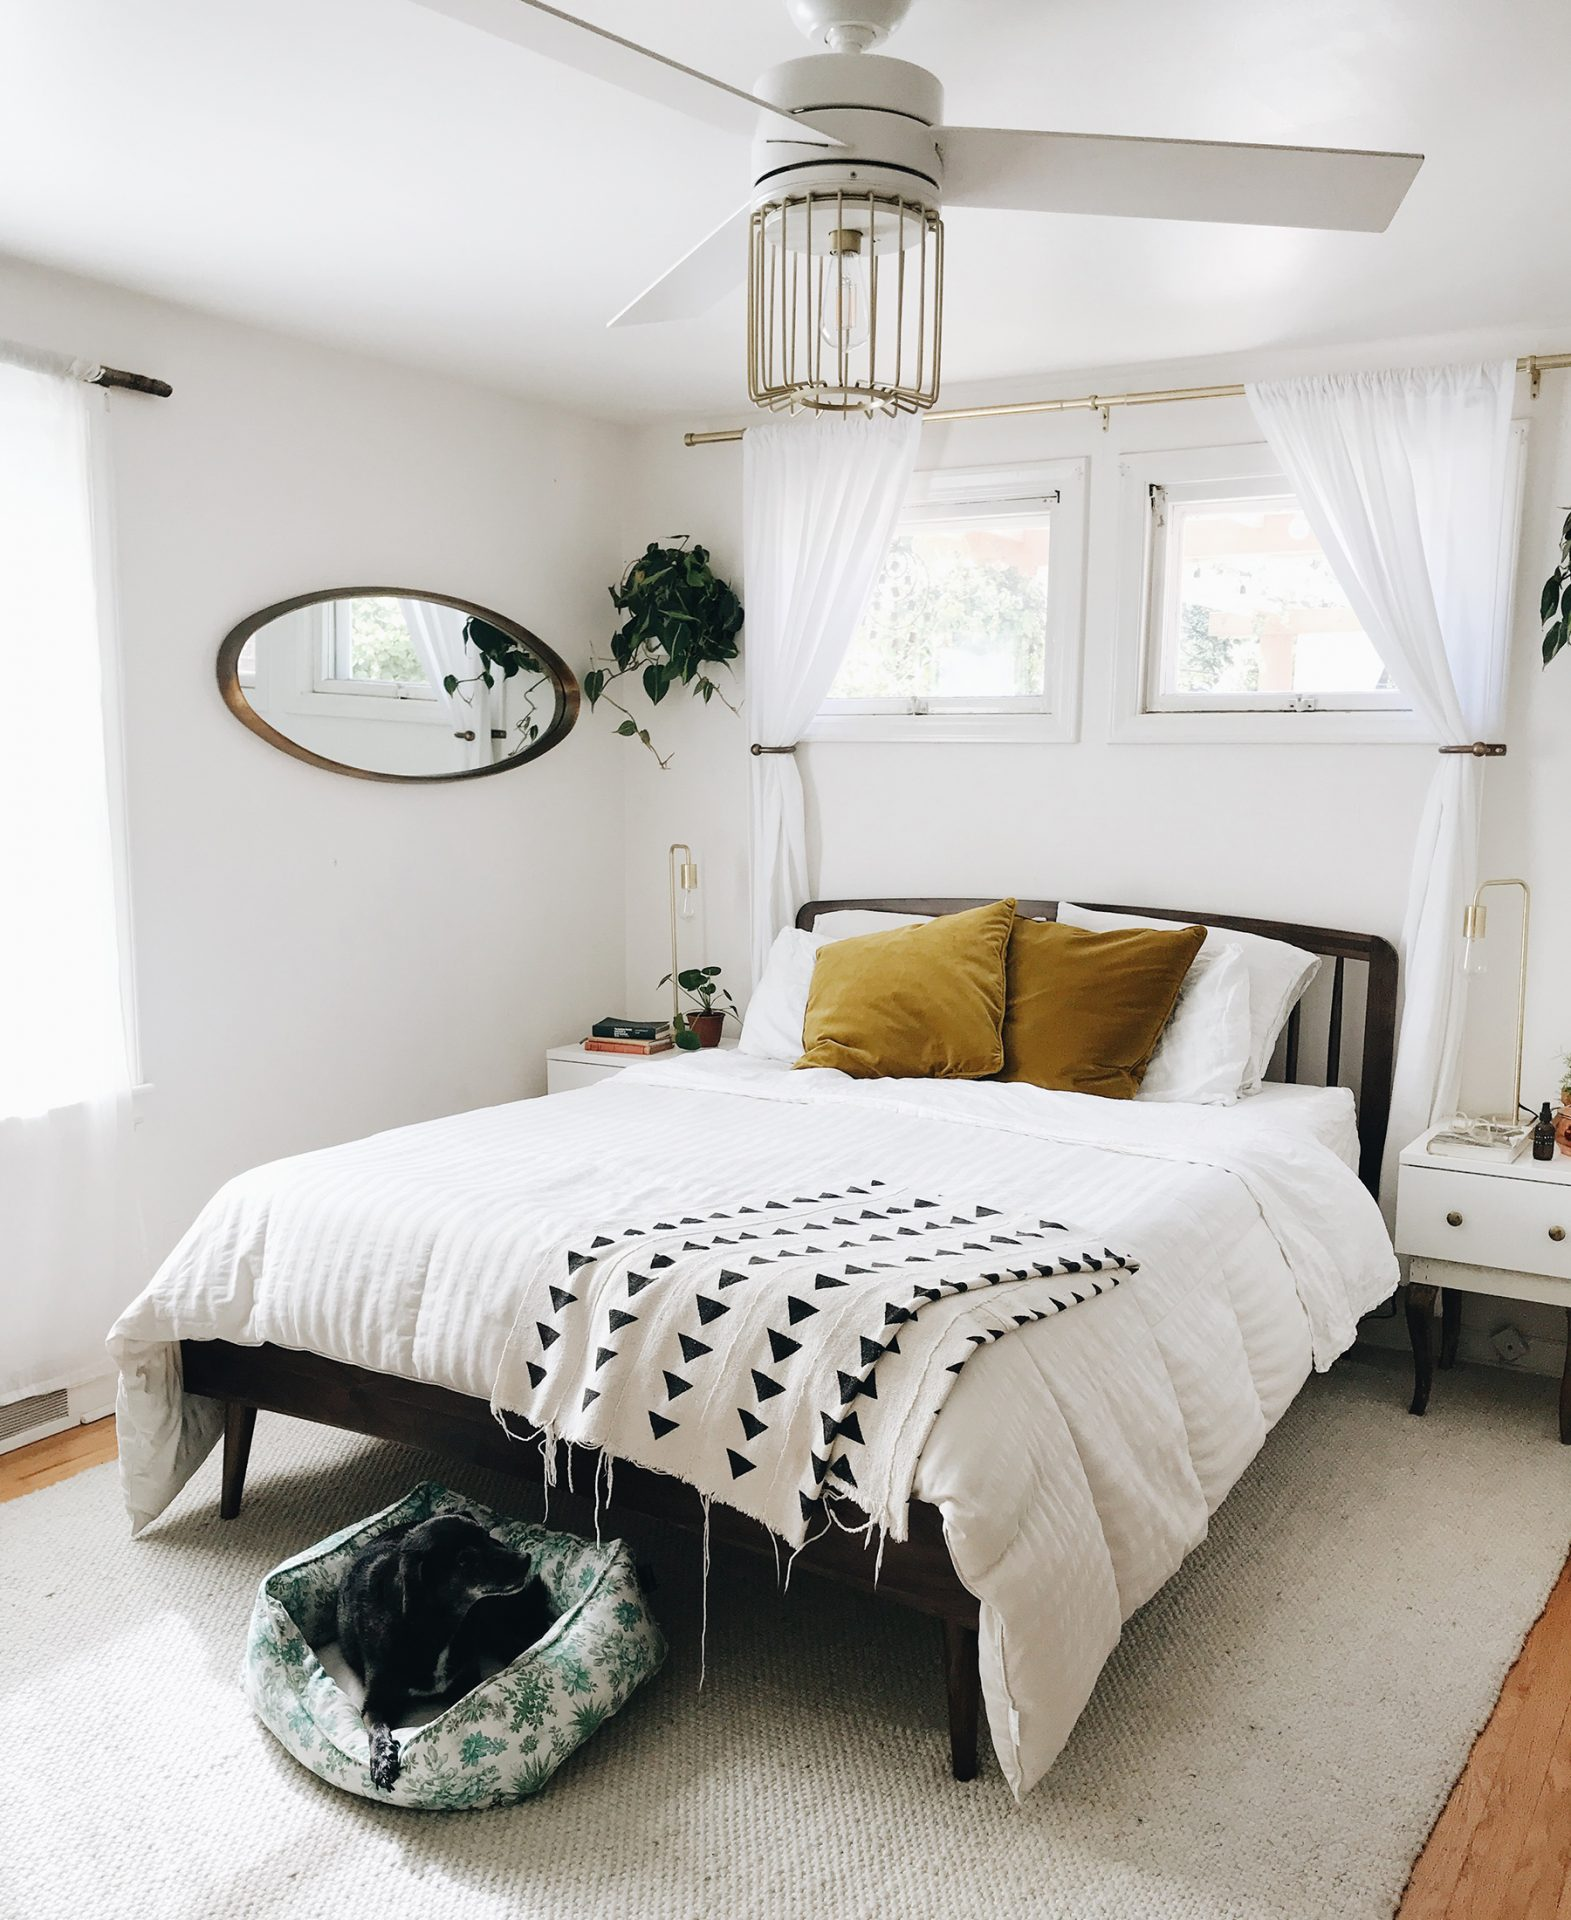 Bev Cooks' light and bright bedroom features Article's Culla bed.